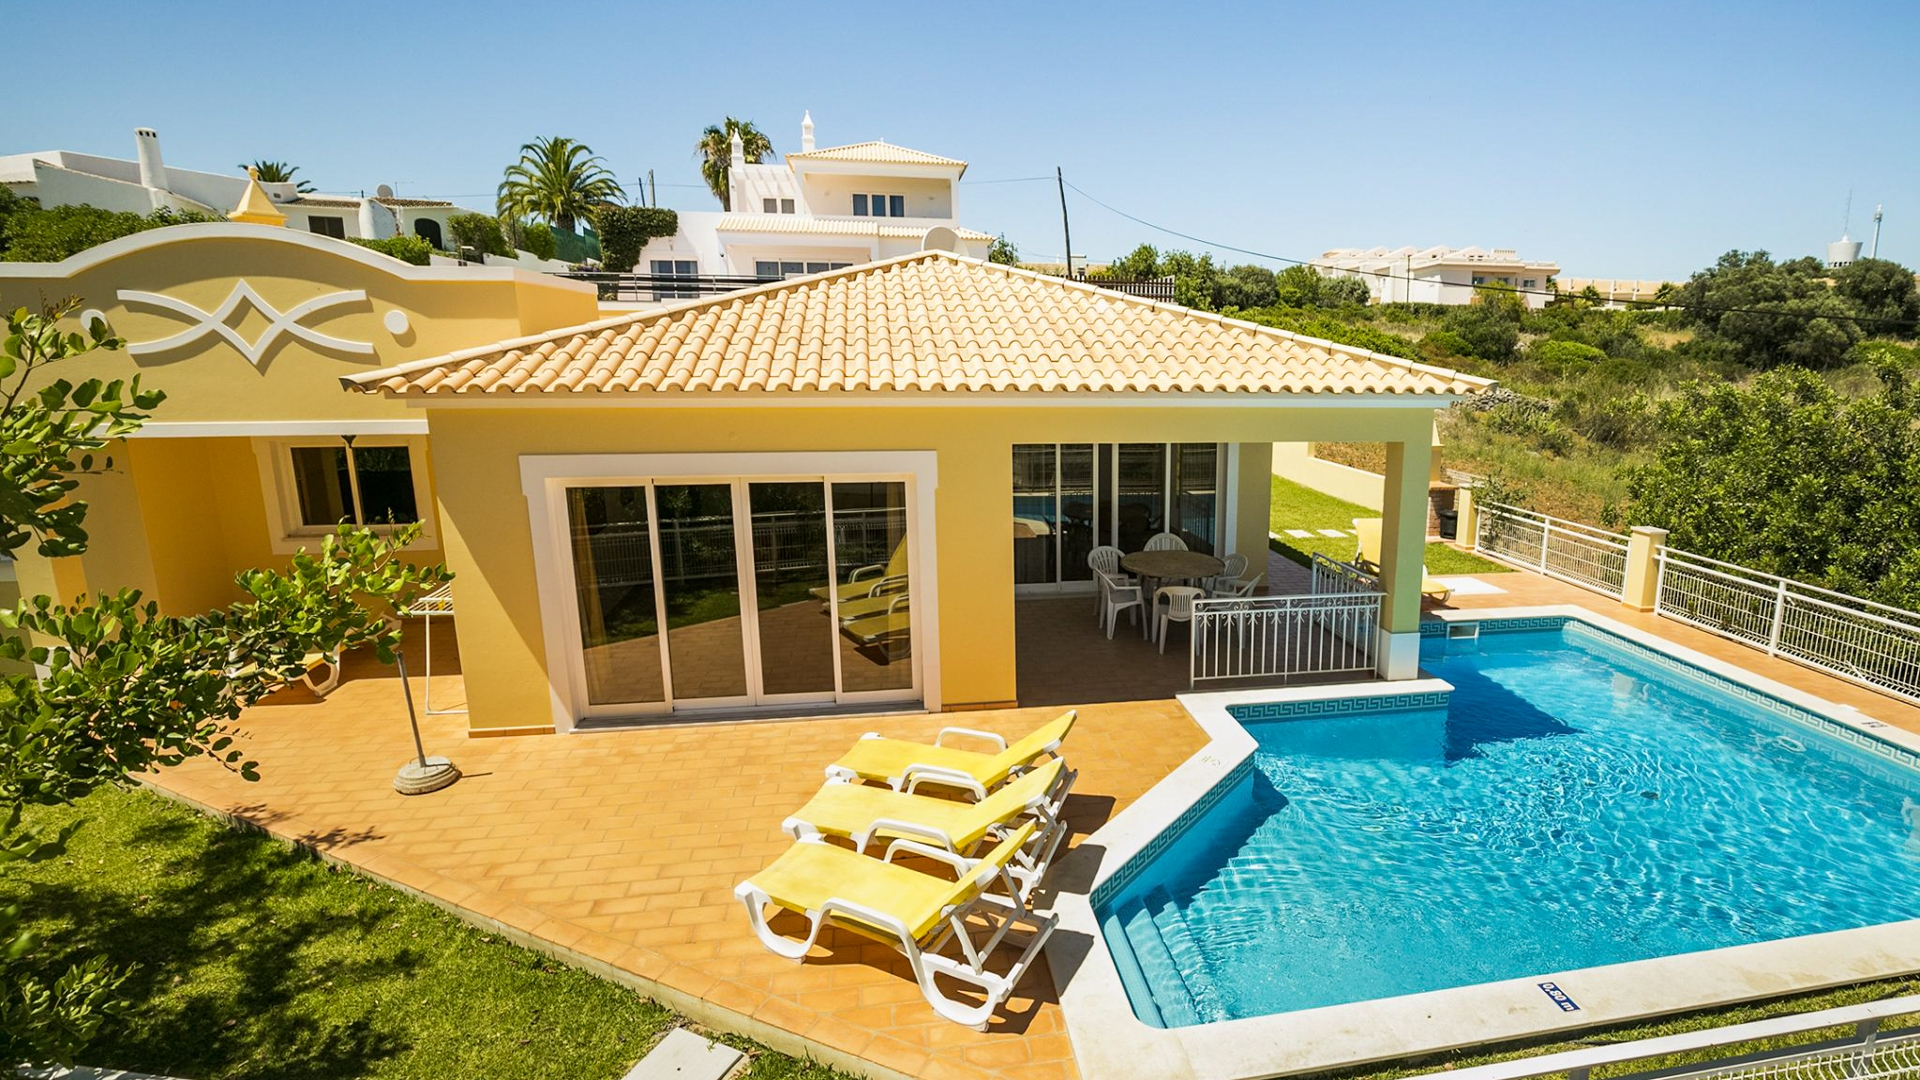 3 Bedroom One Level Villa with Sea Views, Albufeira | PGM568 This villa is set over one level with no interior stairs including to the pool, so would make an ideal retirement property or family friendly holiday home. Located close too beaches and amenities.